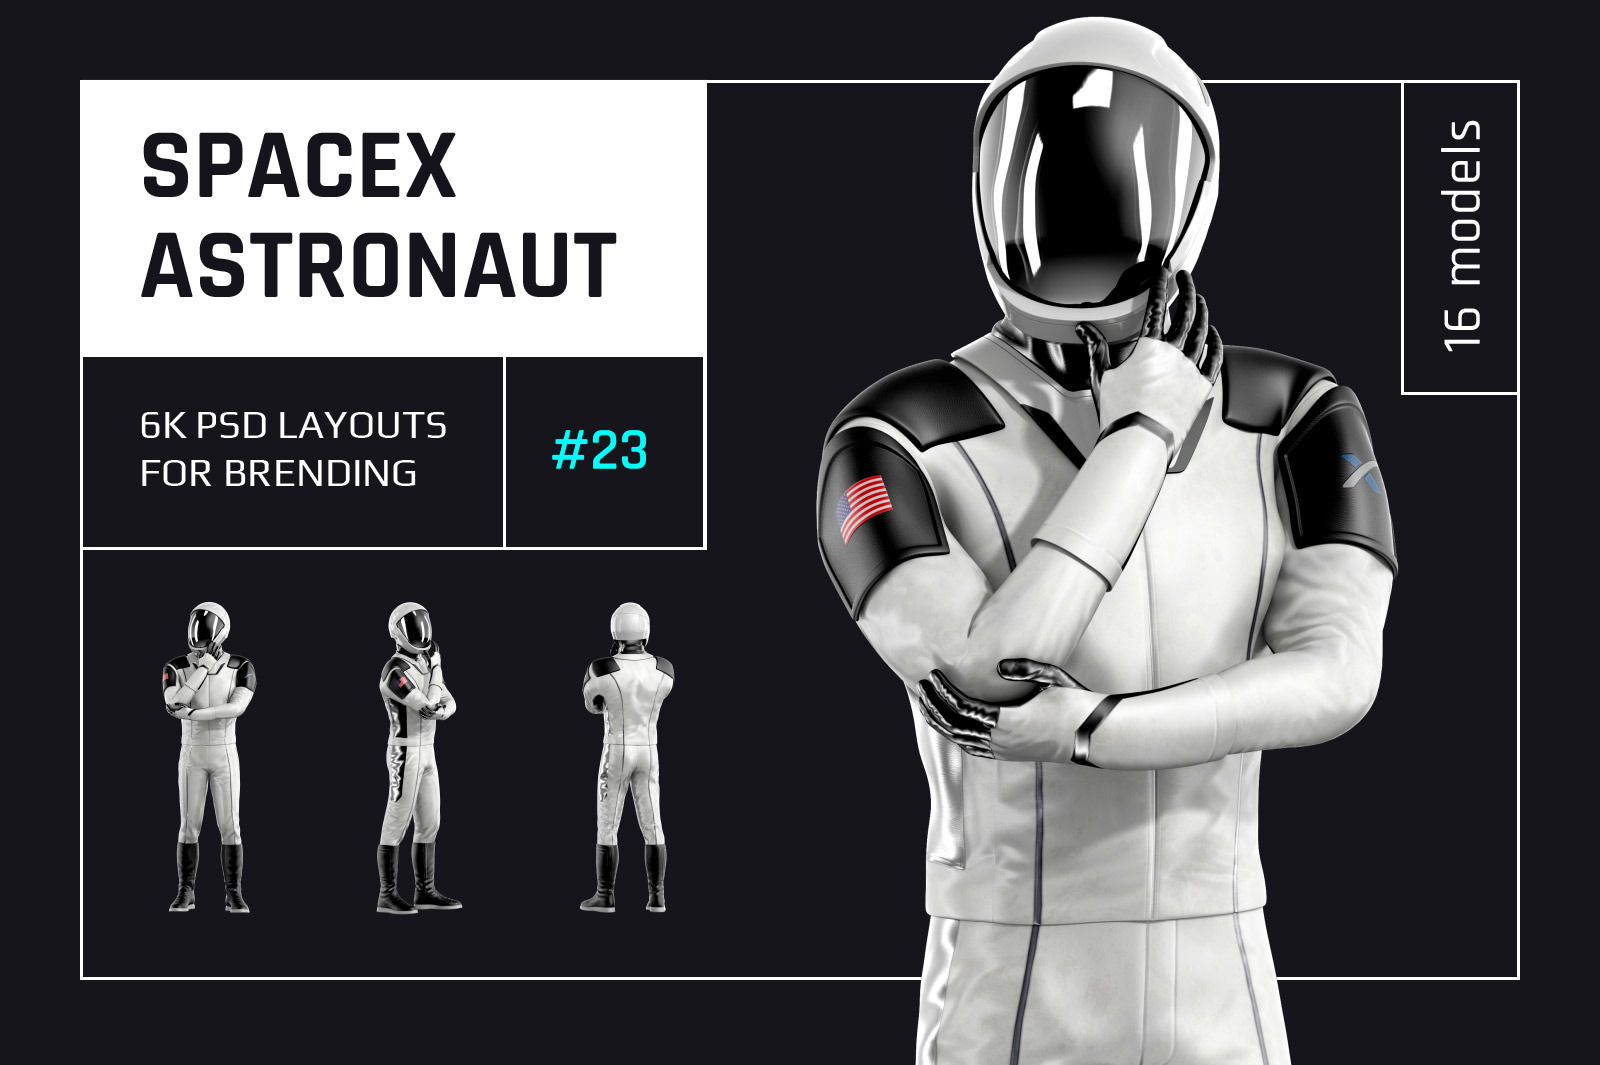 PSD Mockup 3D model SpaceX Astronaut #23